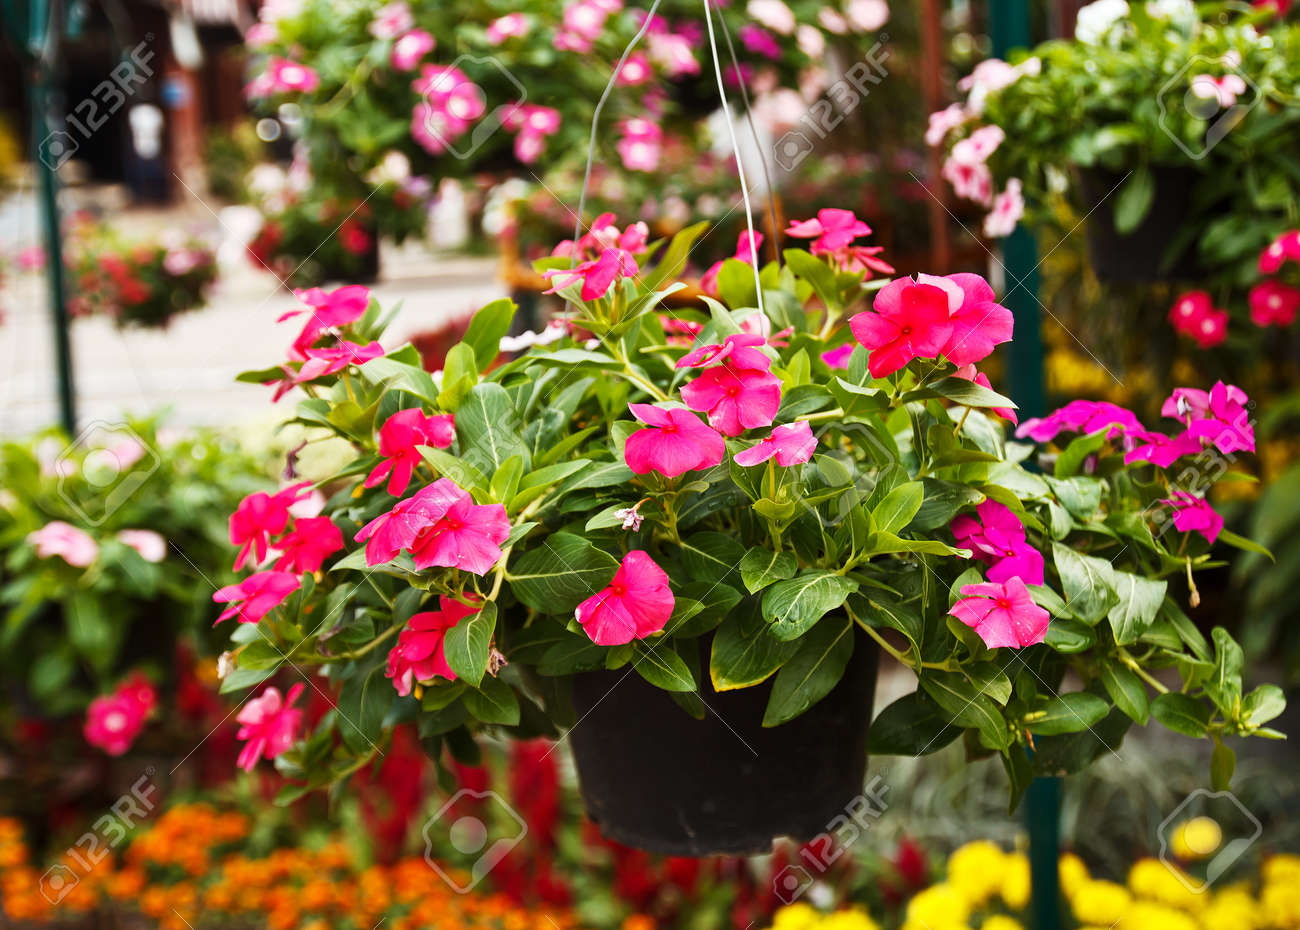 Garden flowers names - Pink Roseus Flowers In Garden The Scientific Name Catharanthus